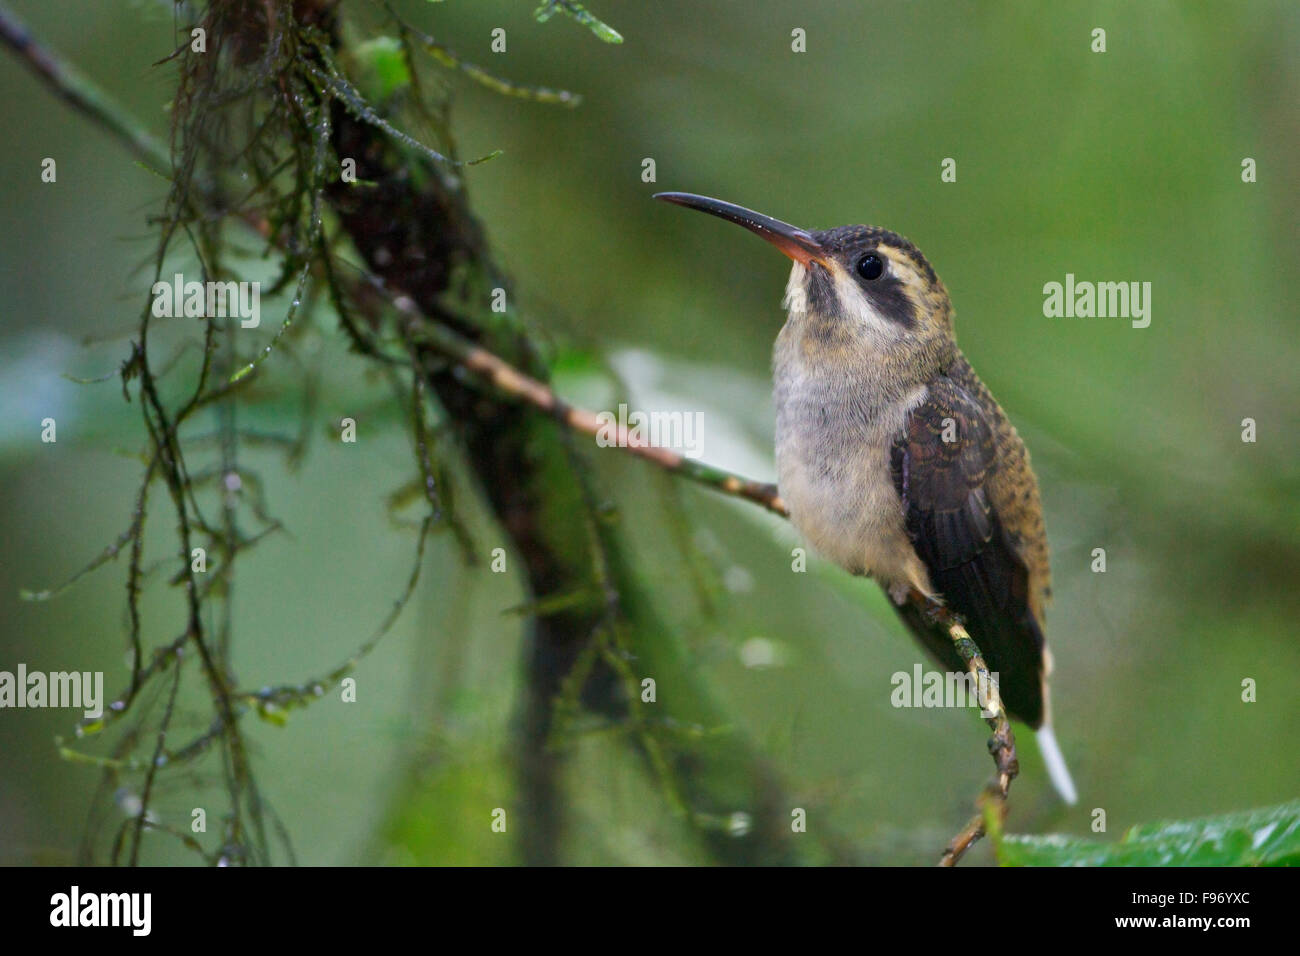 Longtailed Hermit (Phaethornis superciliosus) perched on a branch in Costa Rica, Central America. - Stock Image